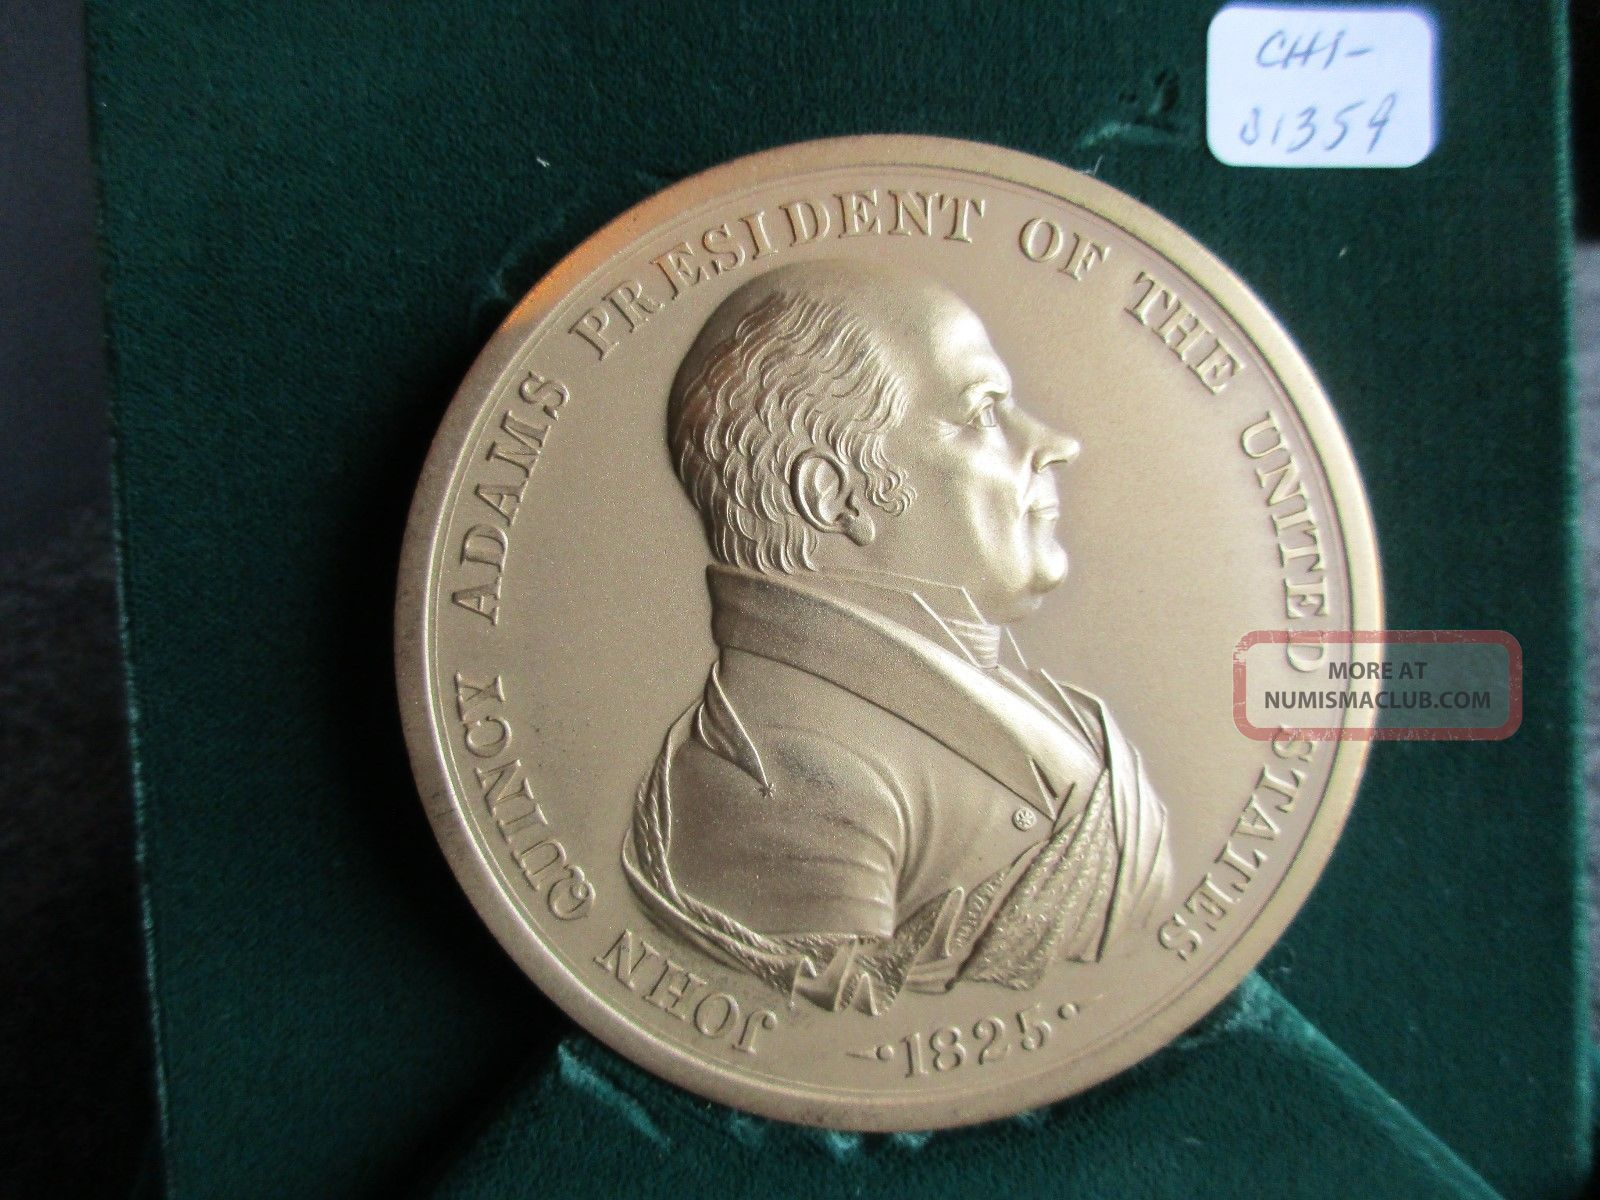 President John Quincy Adams,  Indian Peace Medal,  In Presentation Box,  Chi - 01359 Exonumia photo